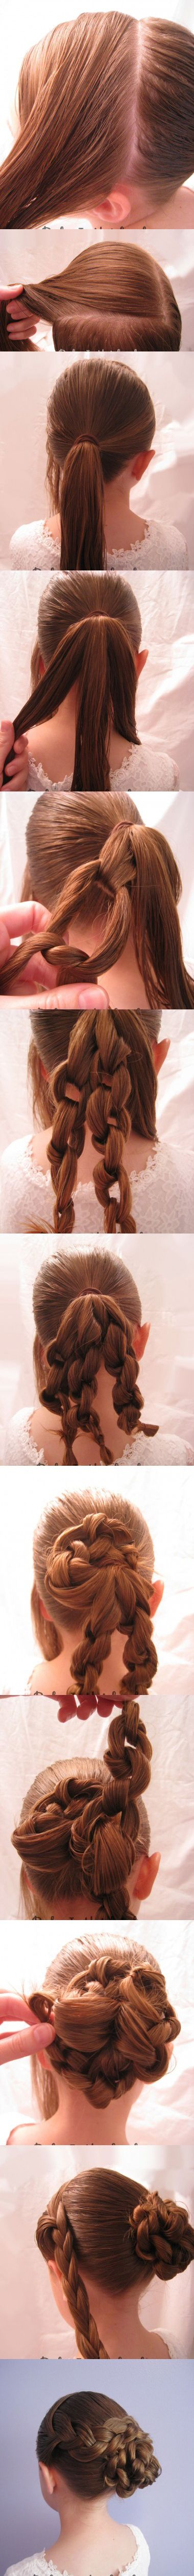 13 Rather Simple Bun Hairstyles Tutorials for 2014 | Pretty Designs